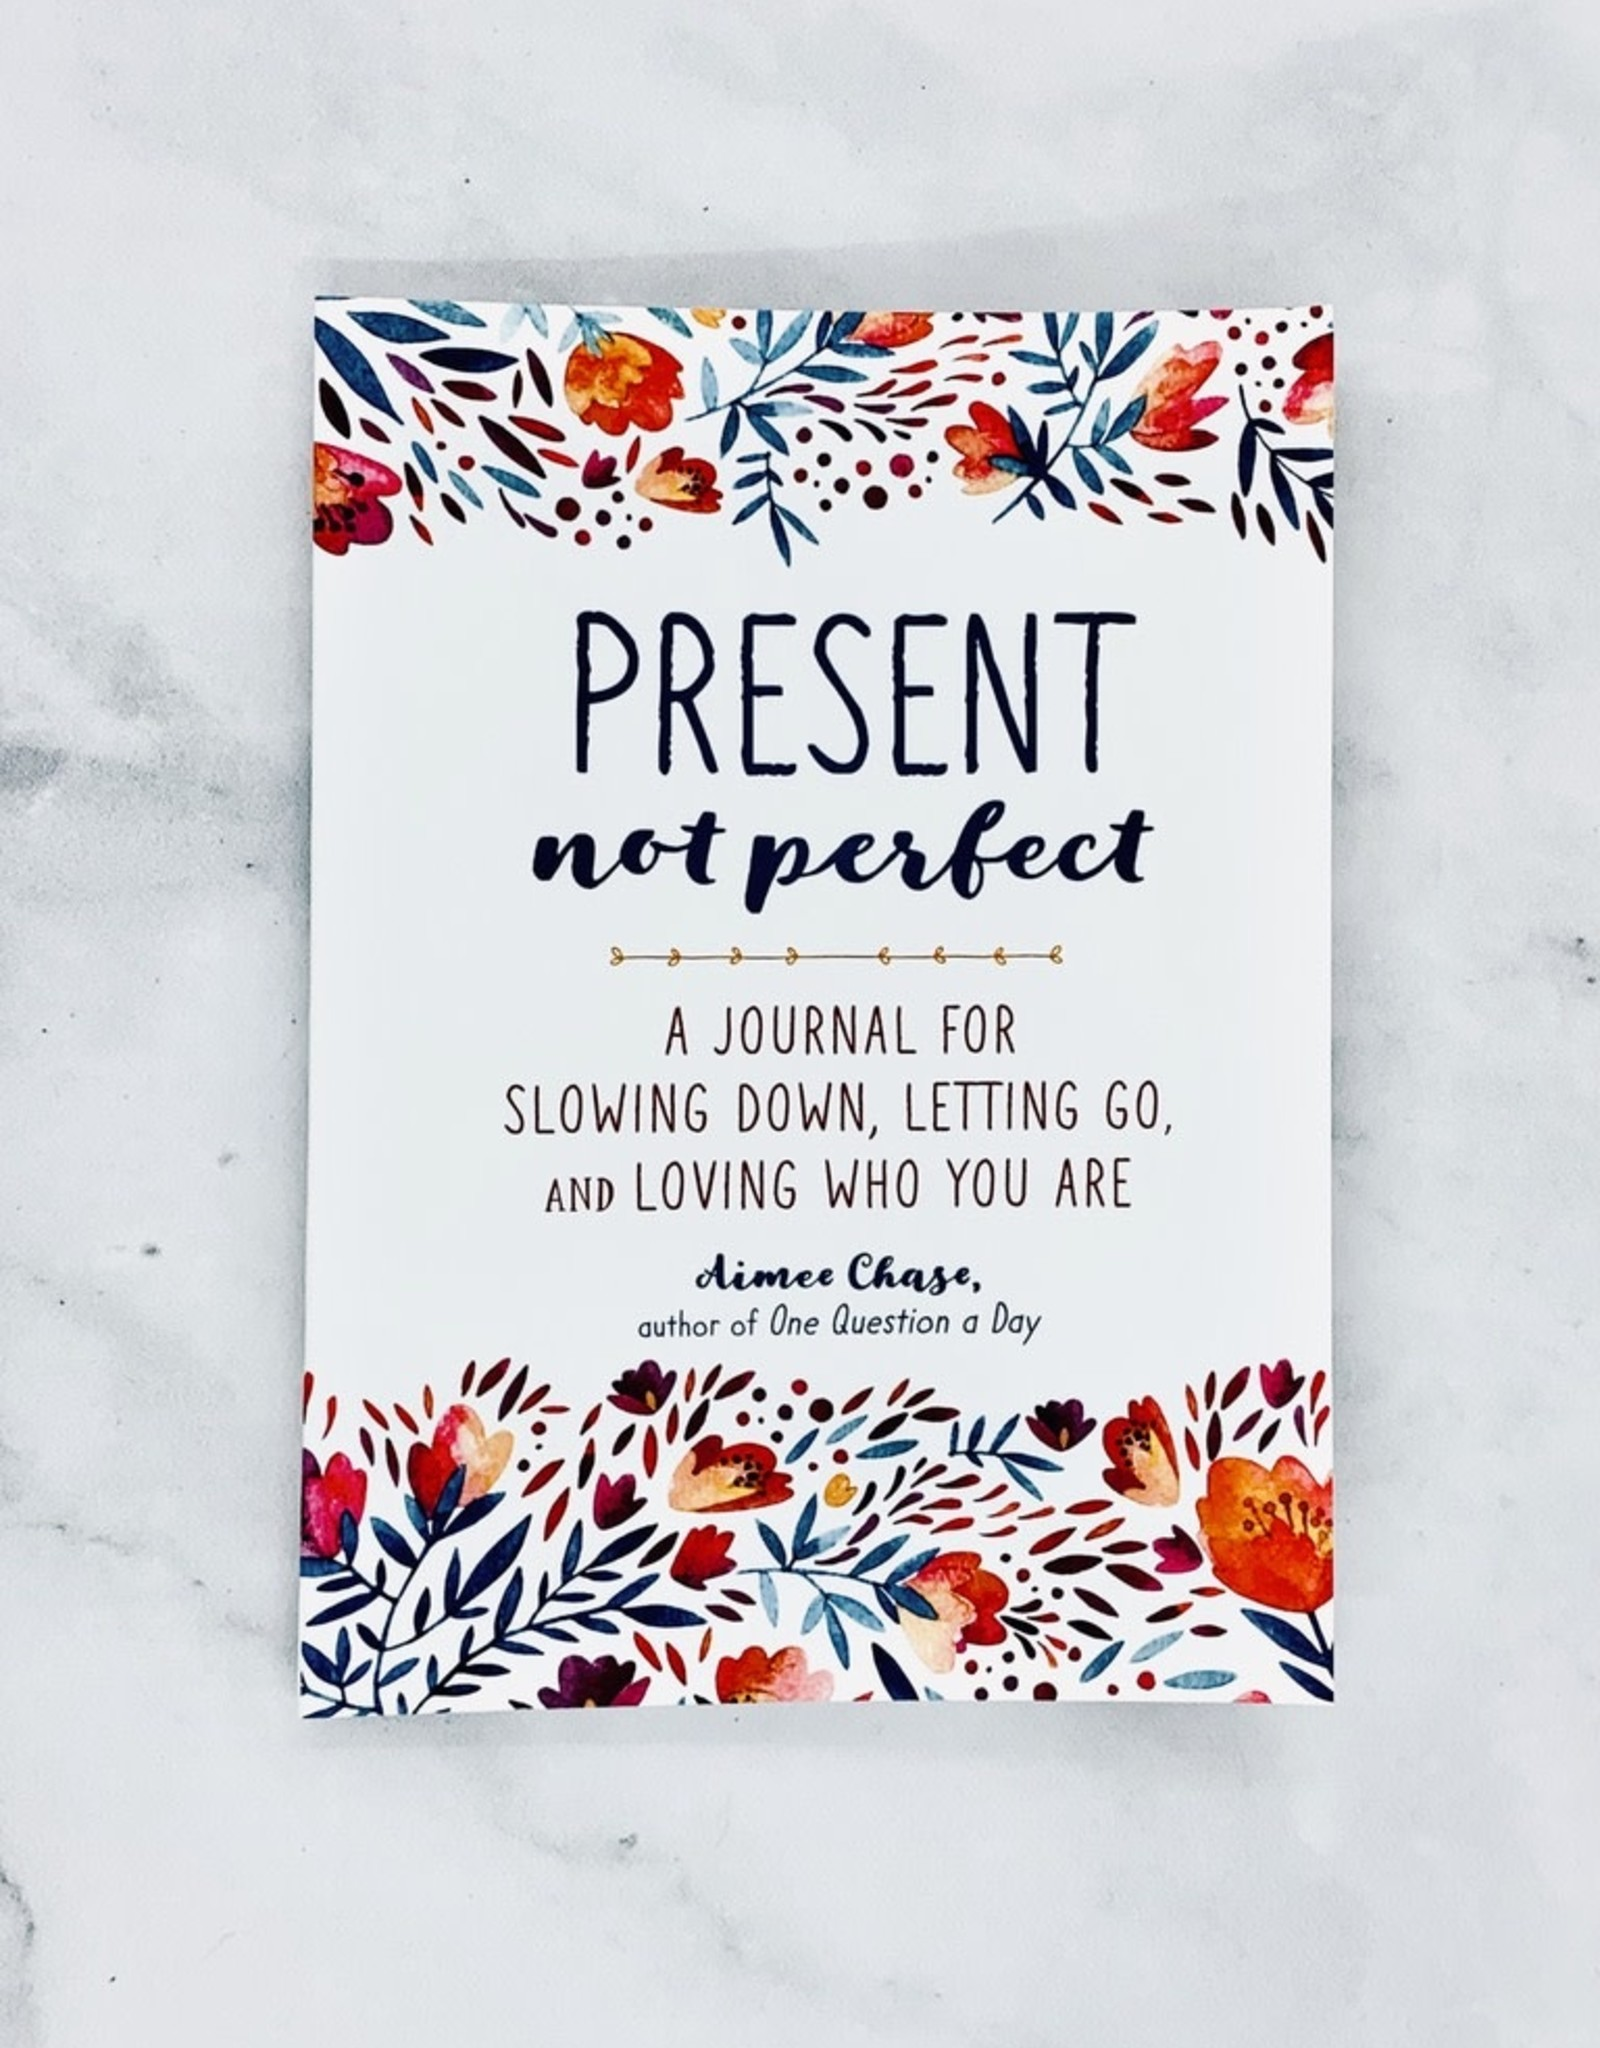 Present, Not Perfect A Journal for Slowing Down, Letting Go, and Loving Who You Are